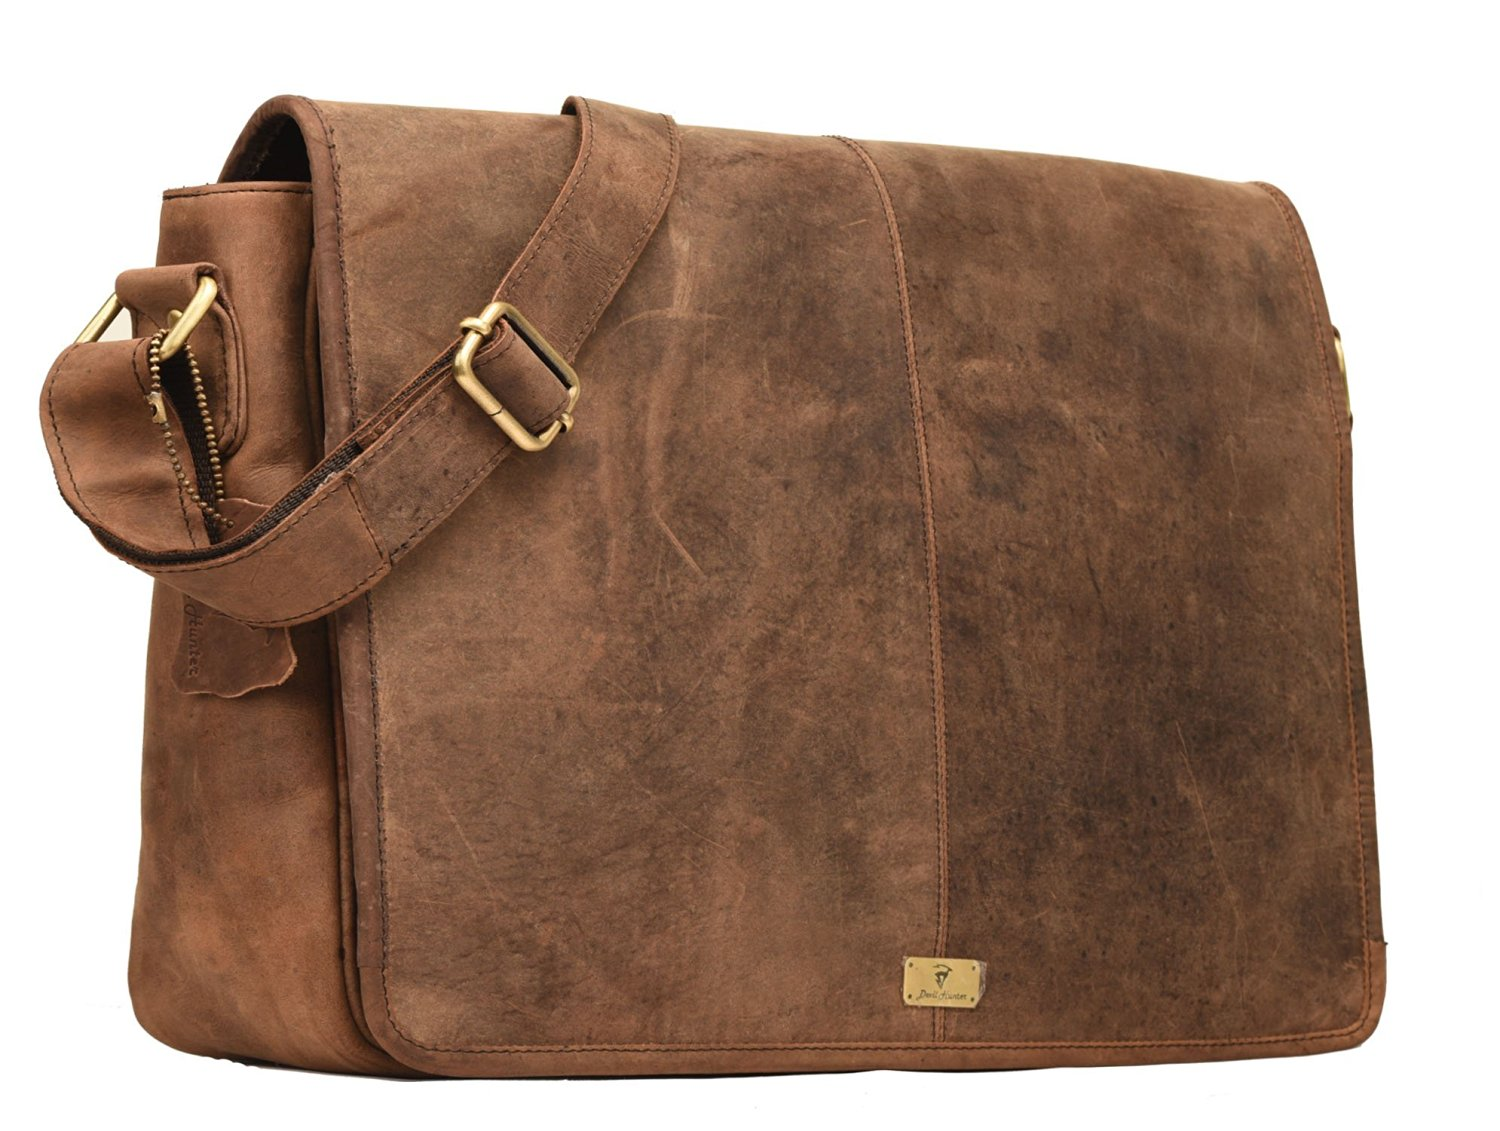 DH Rohtaang Leather Unisex Real Leather Messenger Bag for Laptop Briefcase Satchel ...